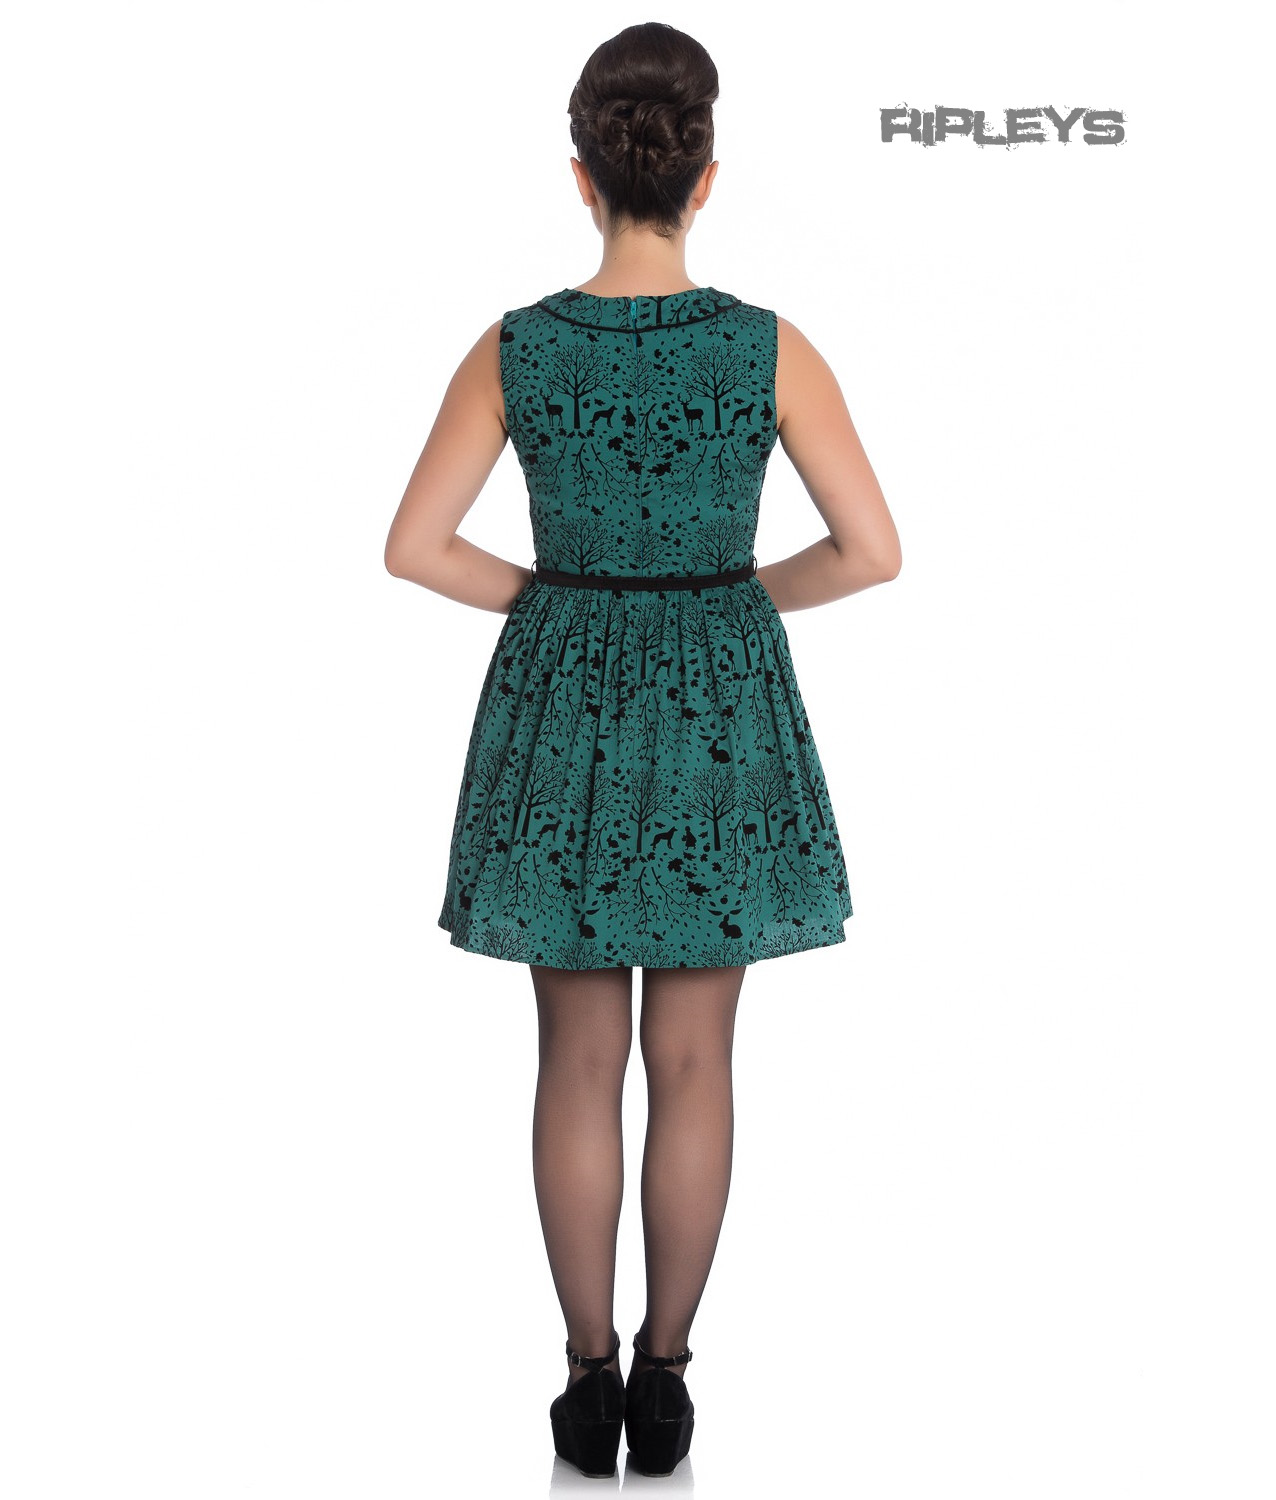 Hell-Bunny-50s-Mini-Skater-Dress-Woodland-Trees-SHERWOOD-Dark-Green-All-Sizes thumbnail 24